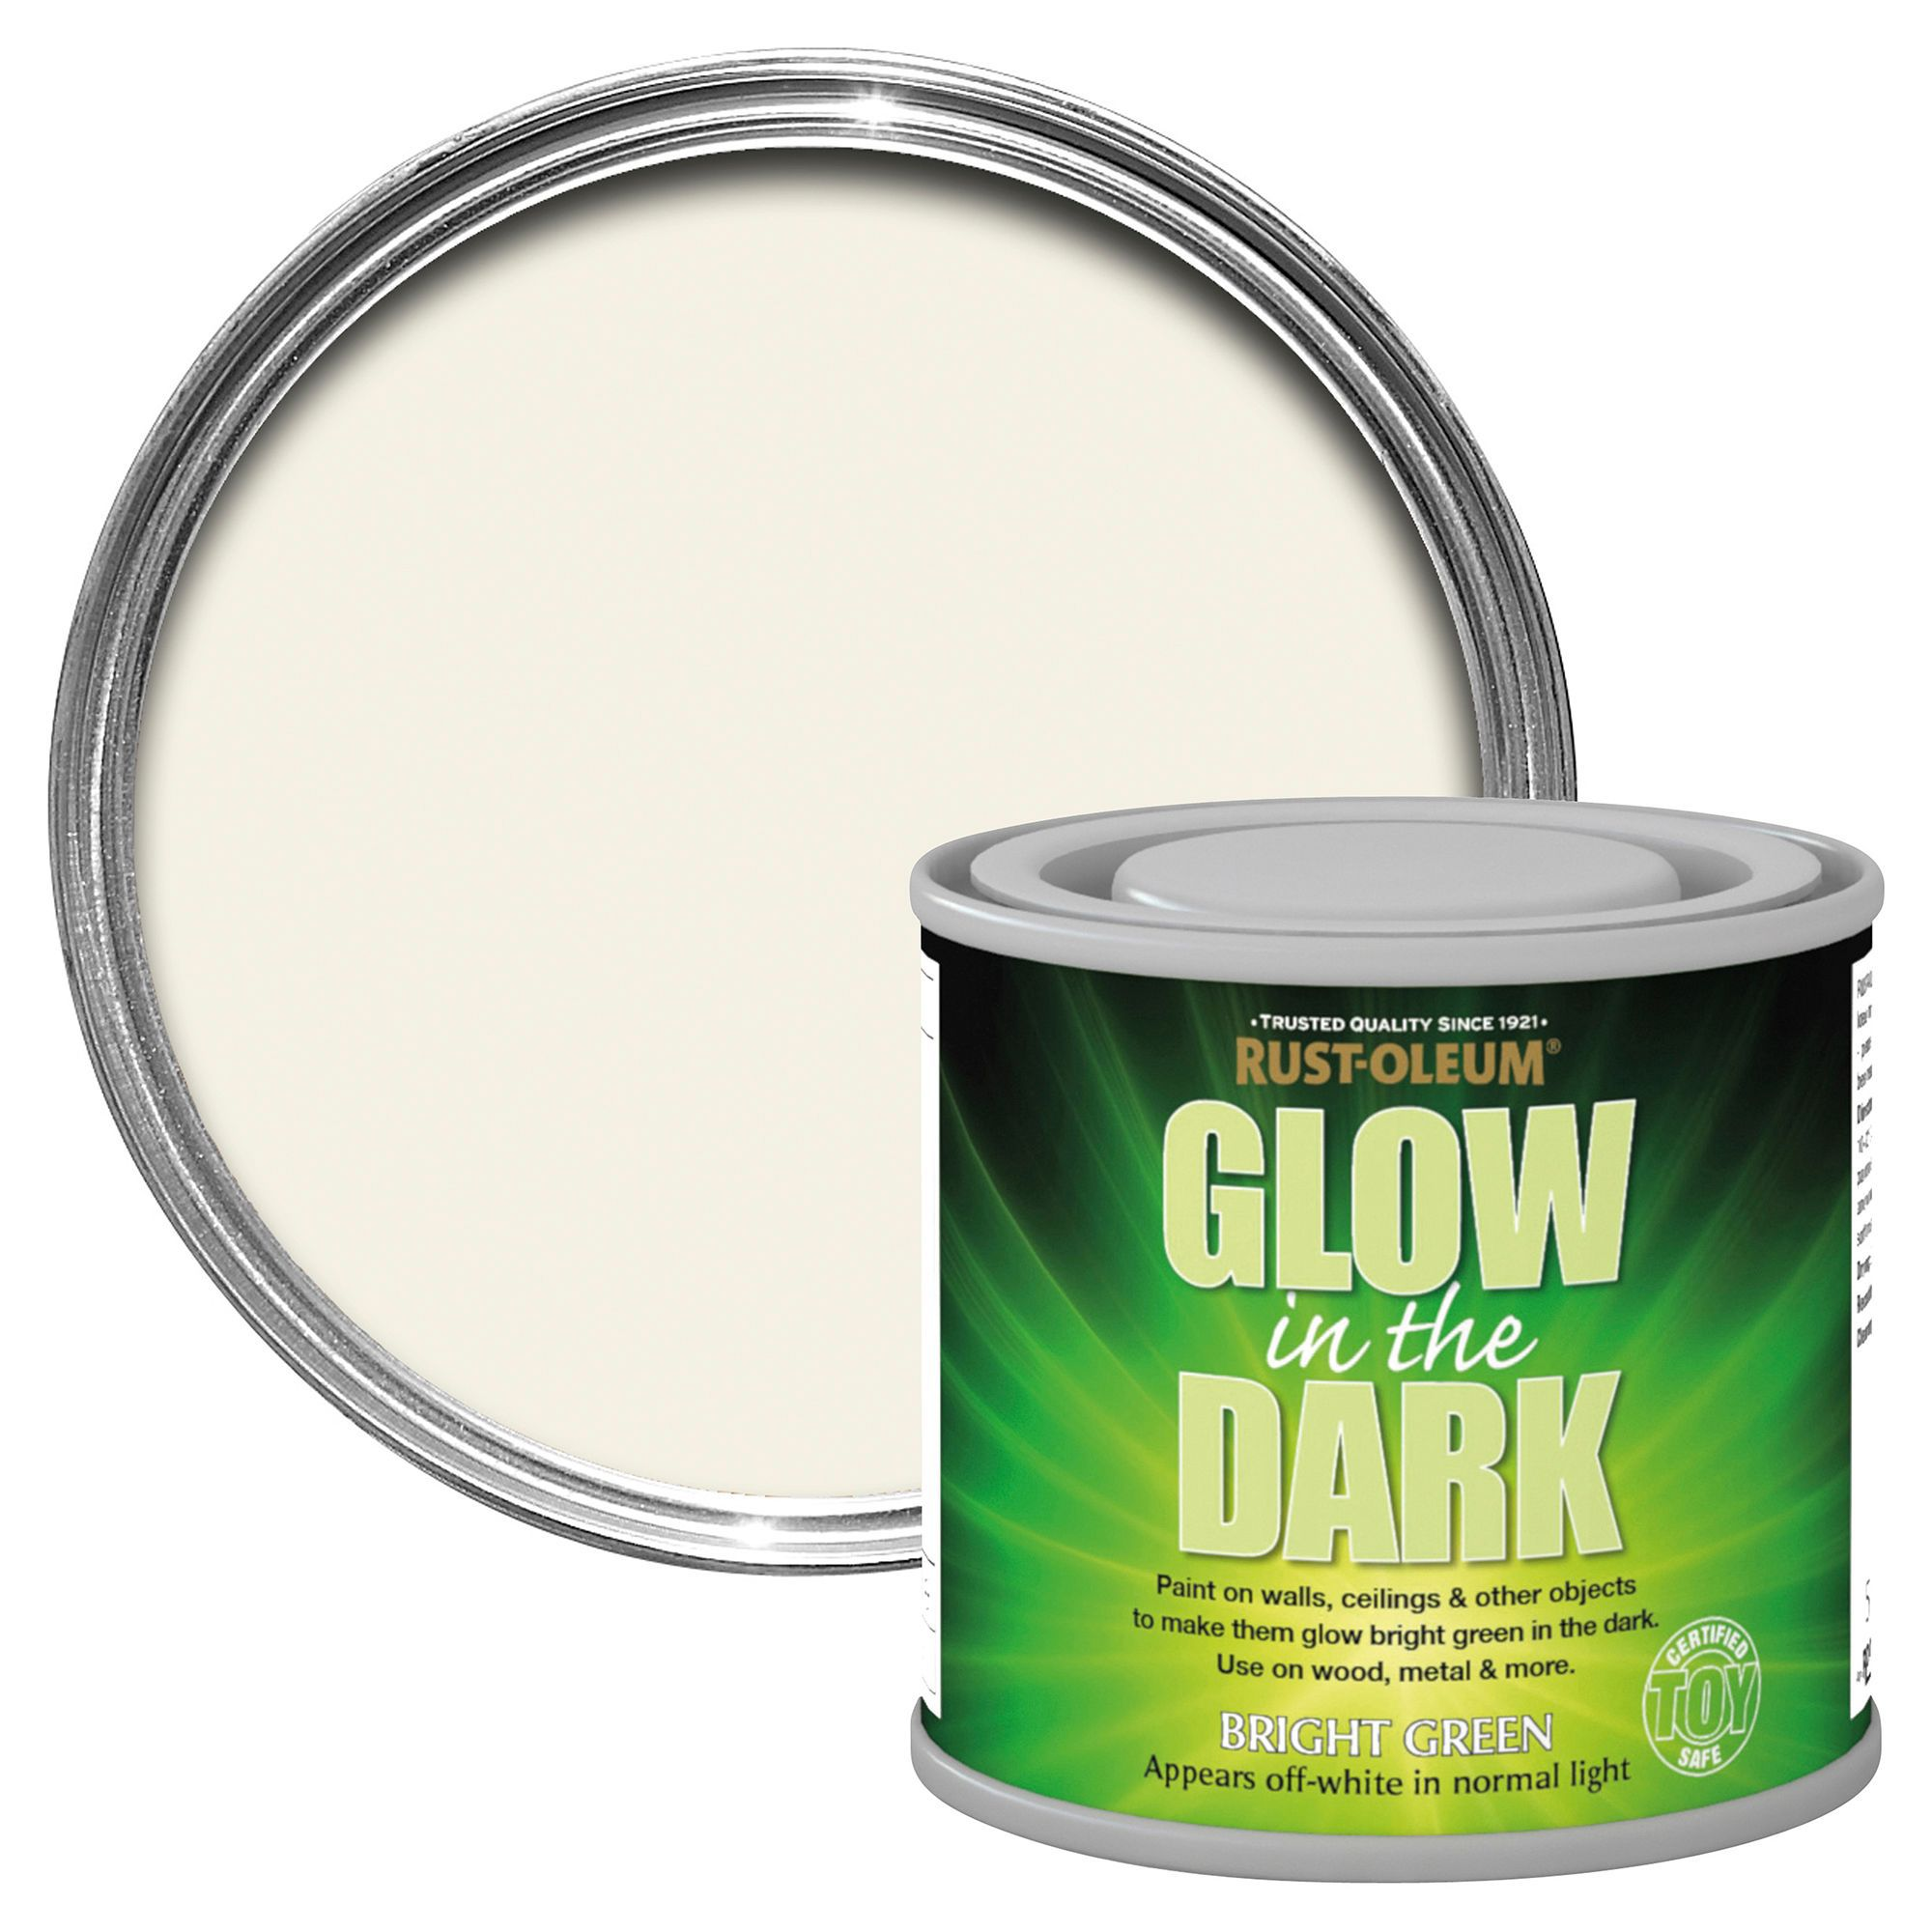 Rust oleum rust oleum glow in the dark matt paint 125 ml departments diy at b q - Rust oleum glow in the dark paint exterior collection ...